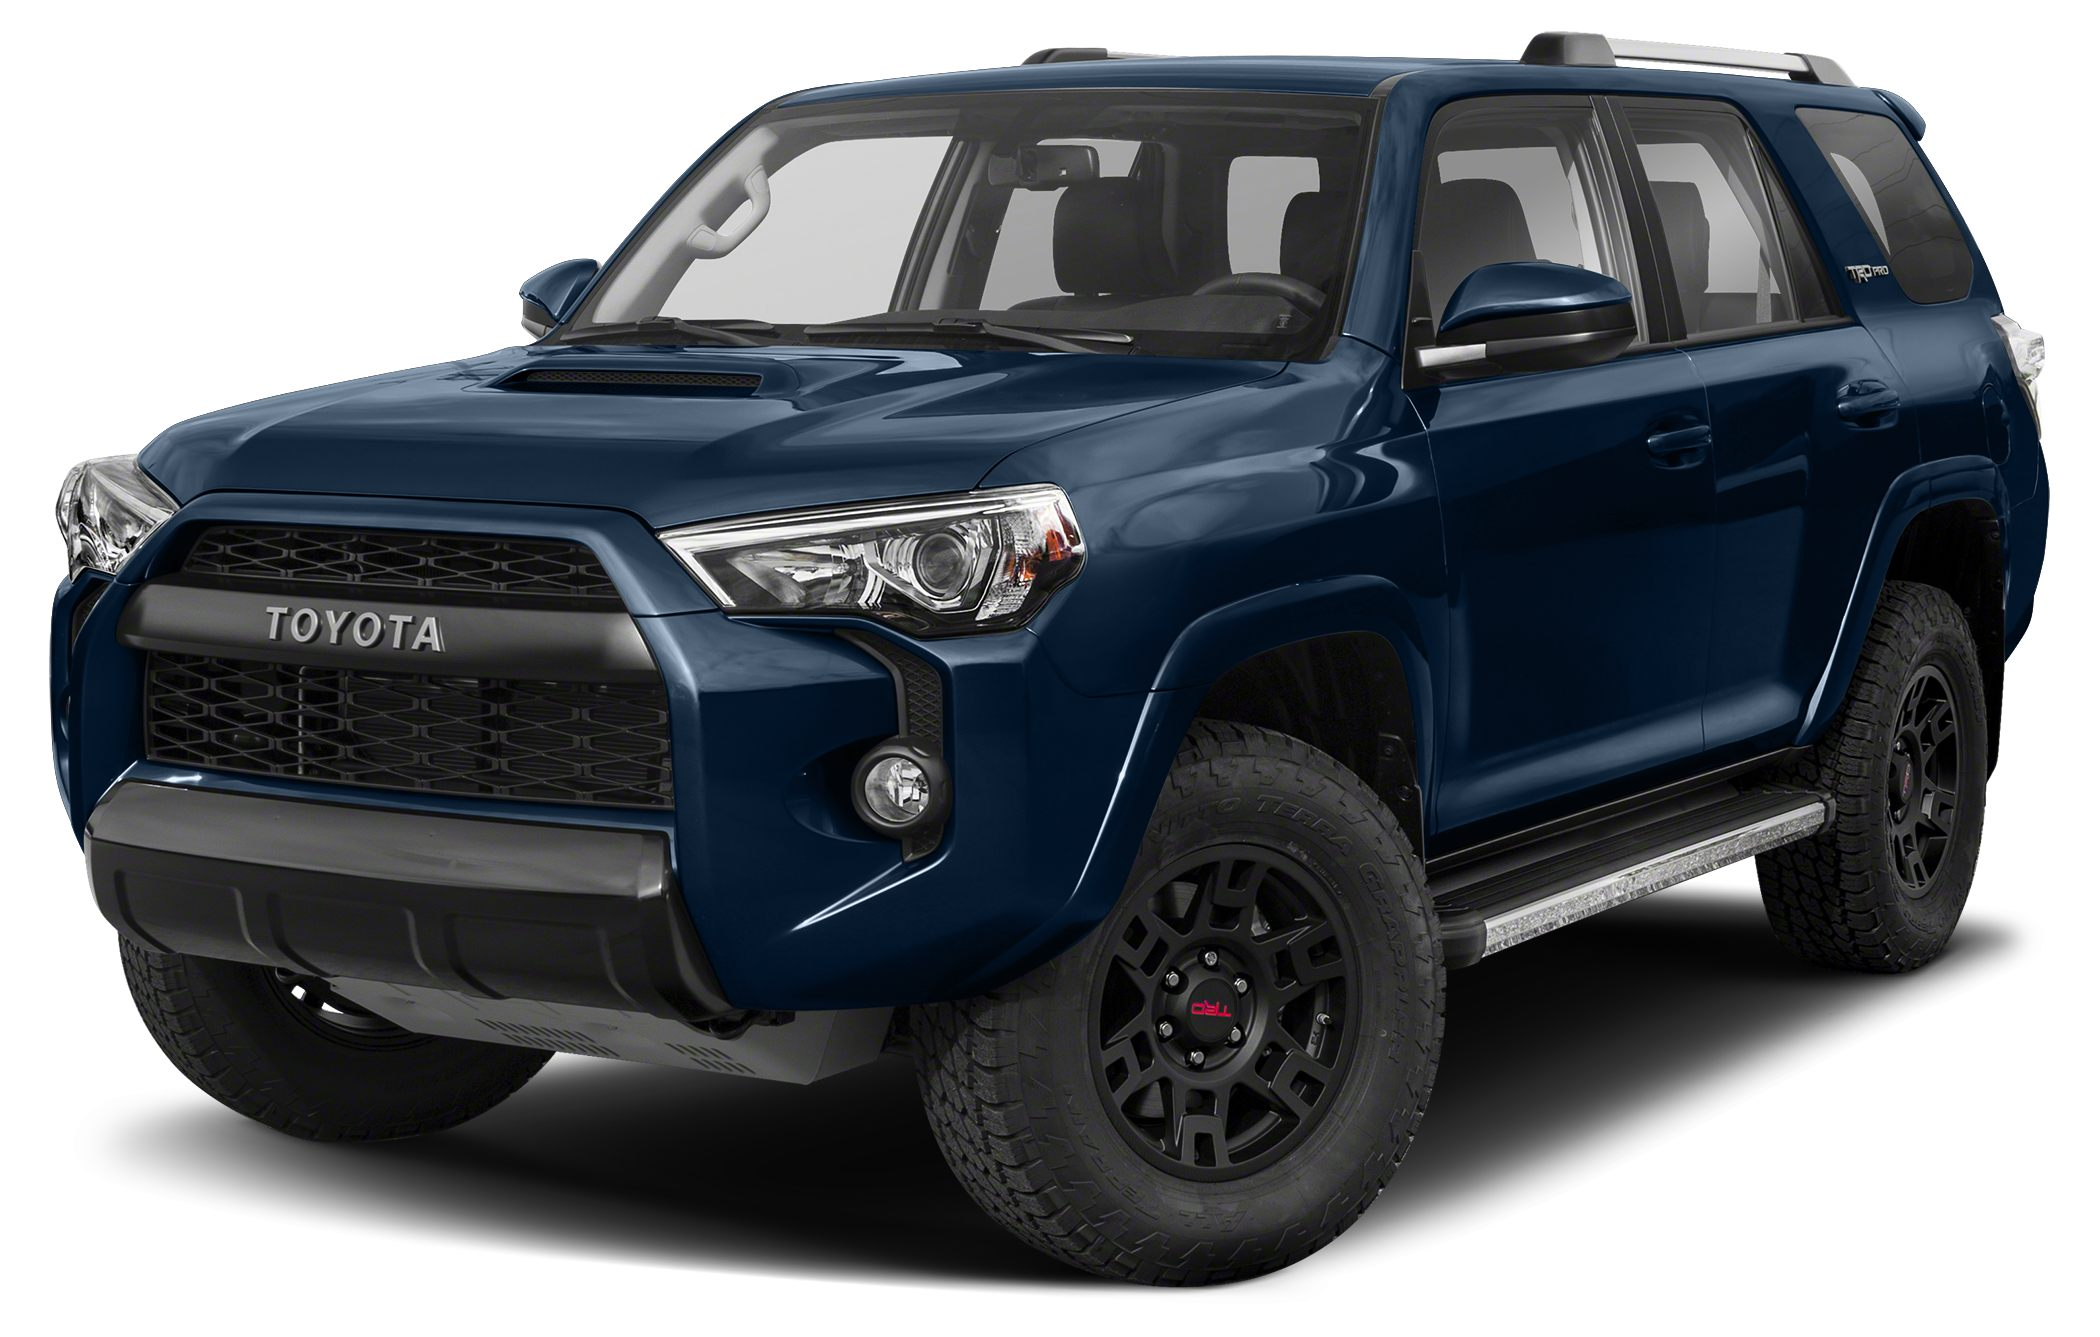 2018 Toyota 4Runner TRD Pro Westboro Toyota is proud to present HASSLE FREE BUYING EXPERIENCE with